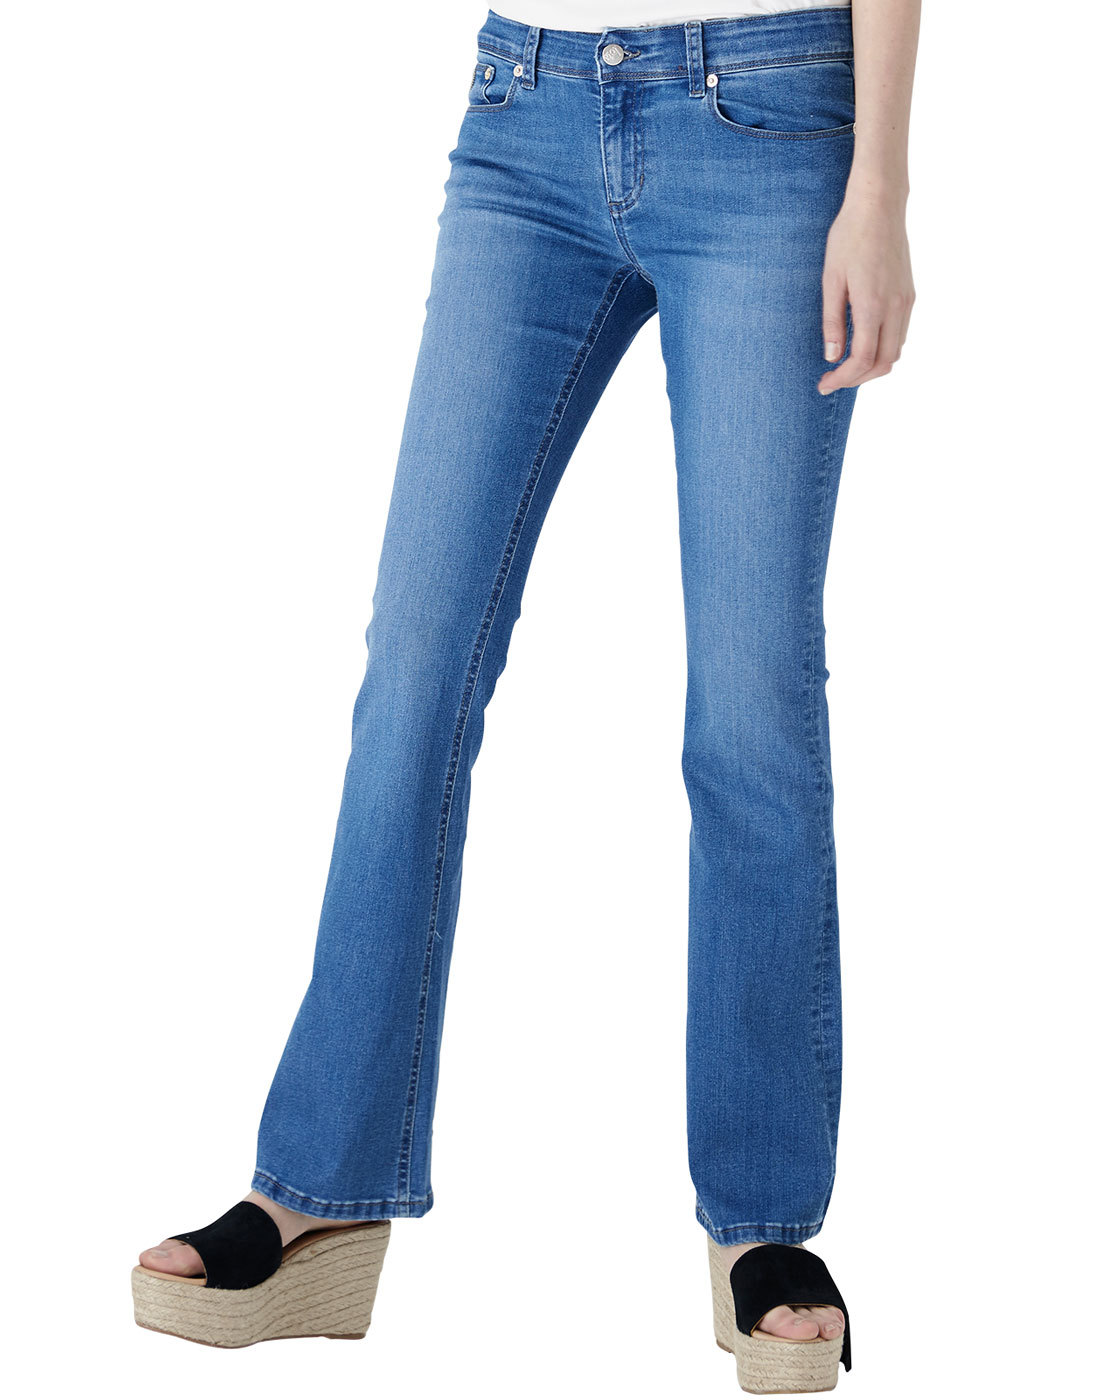 Melrose LOIS Retro 1970s Pacific Blue Denim Flares